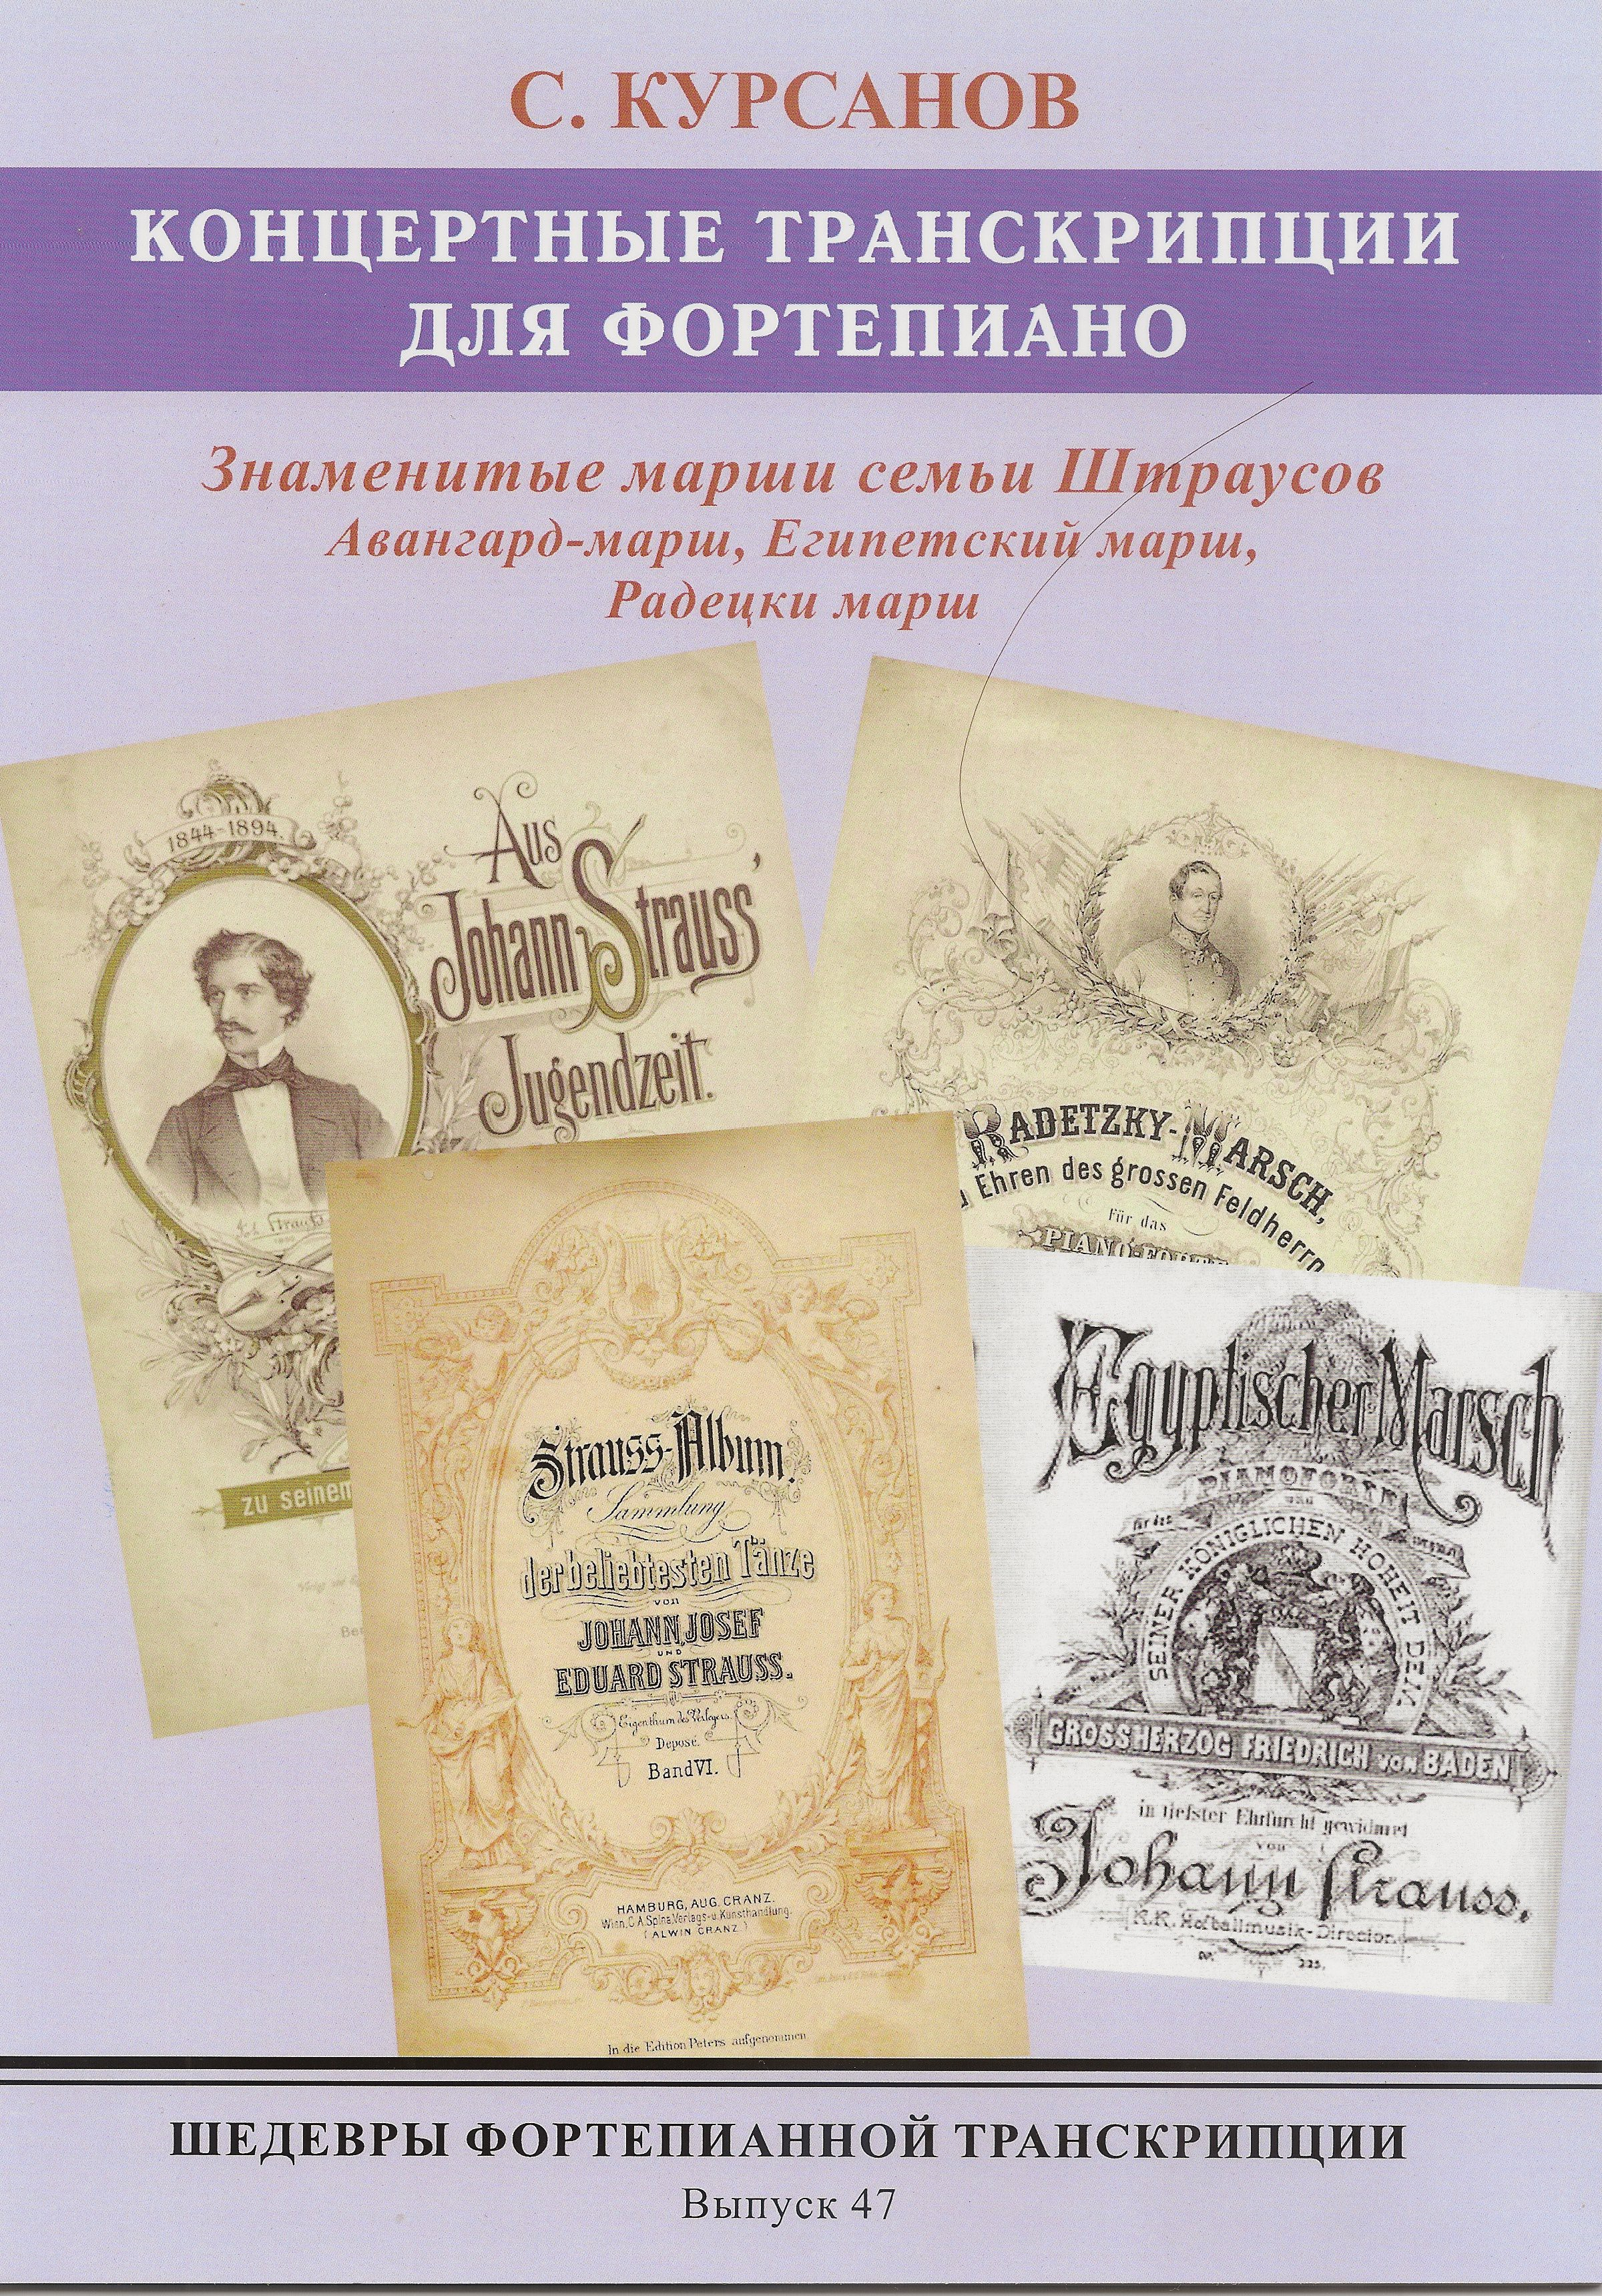 Masterpieces of piano transcription vol. 47. Sergei Kursanov. Famous marches of the Strauss family